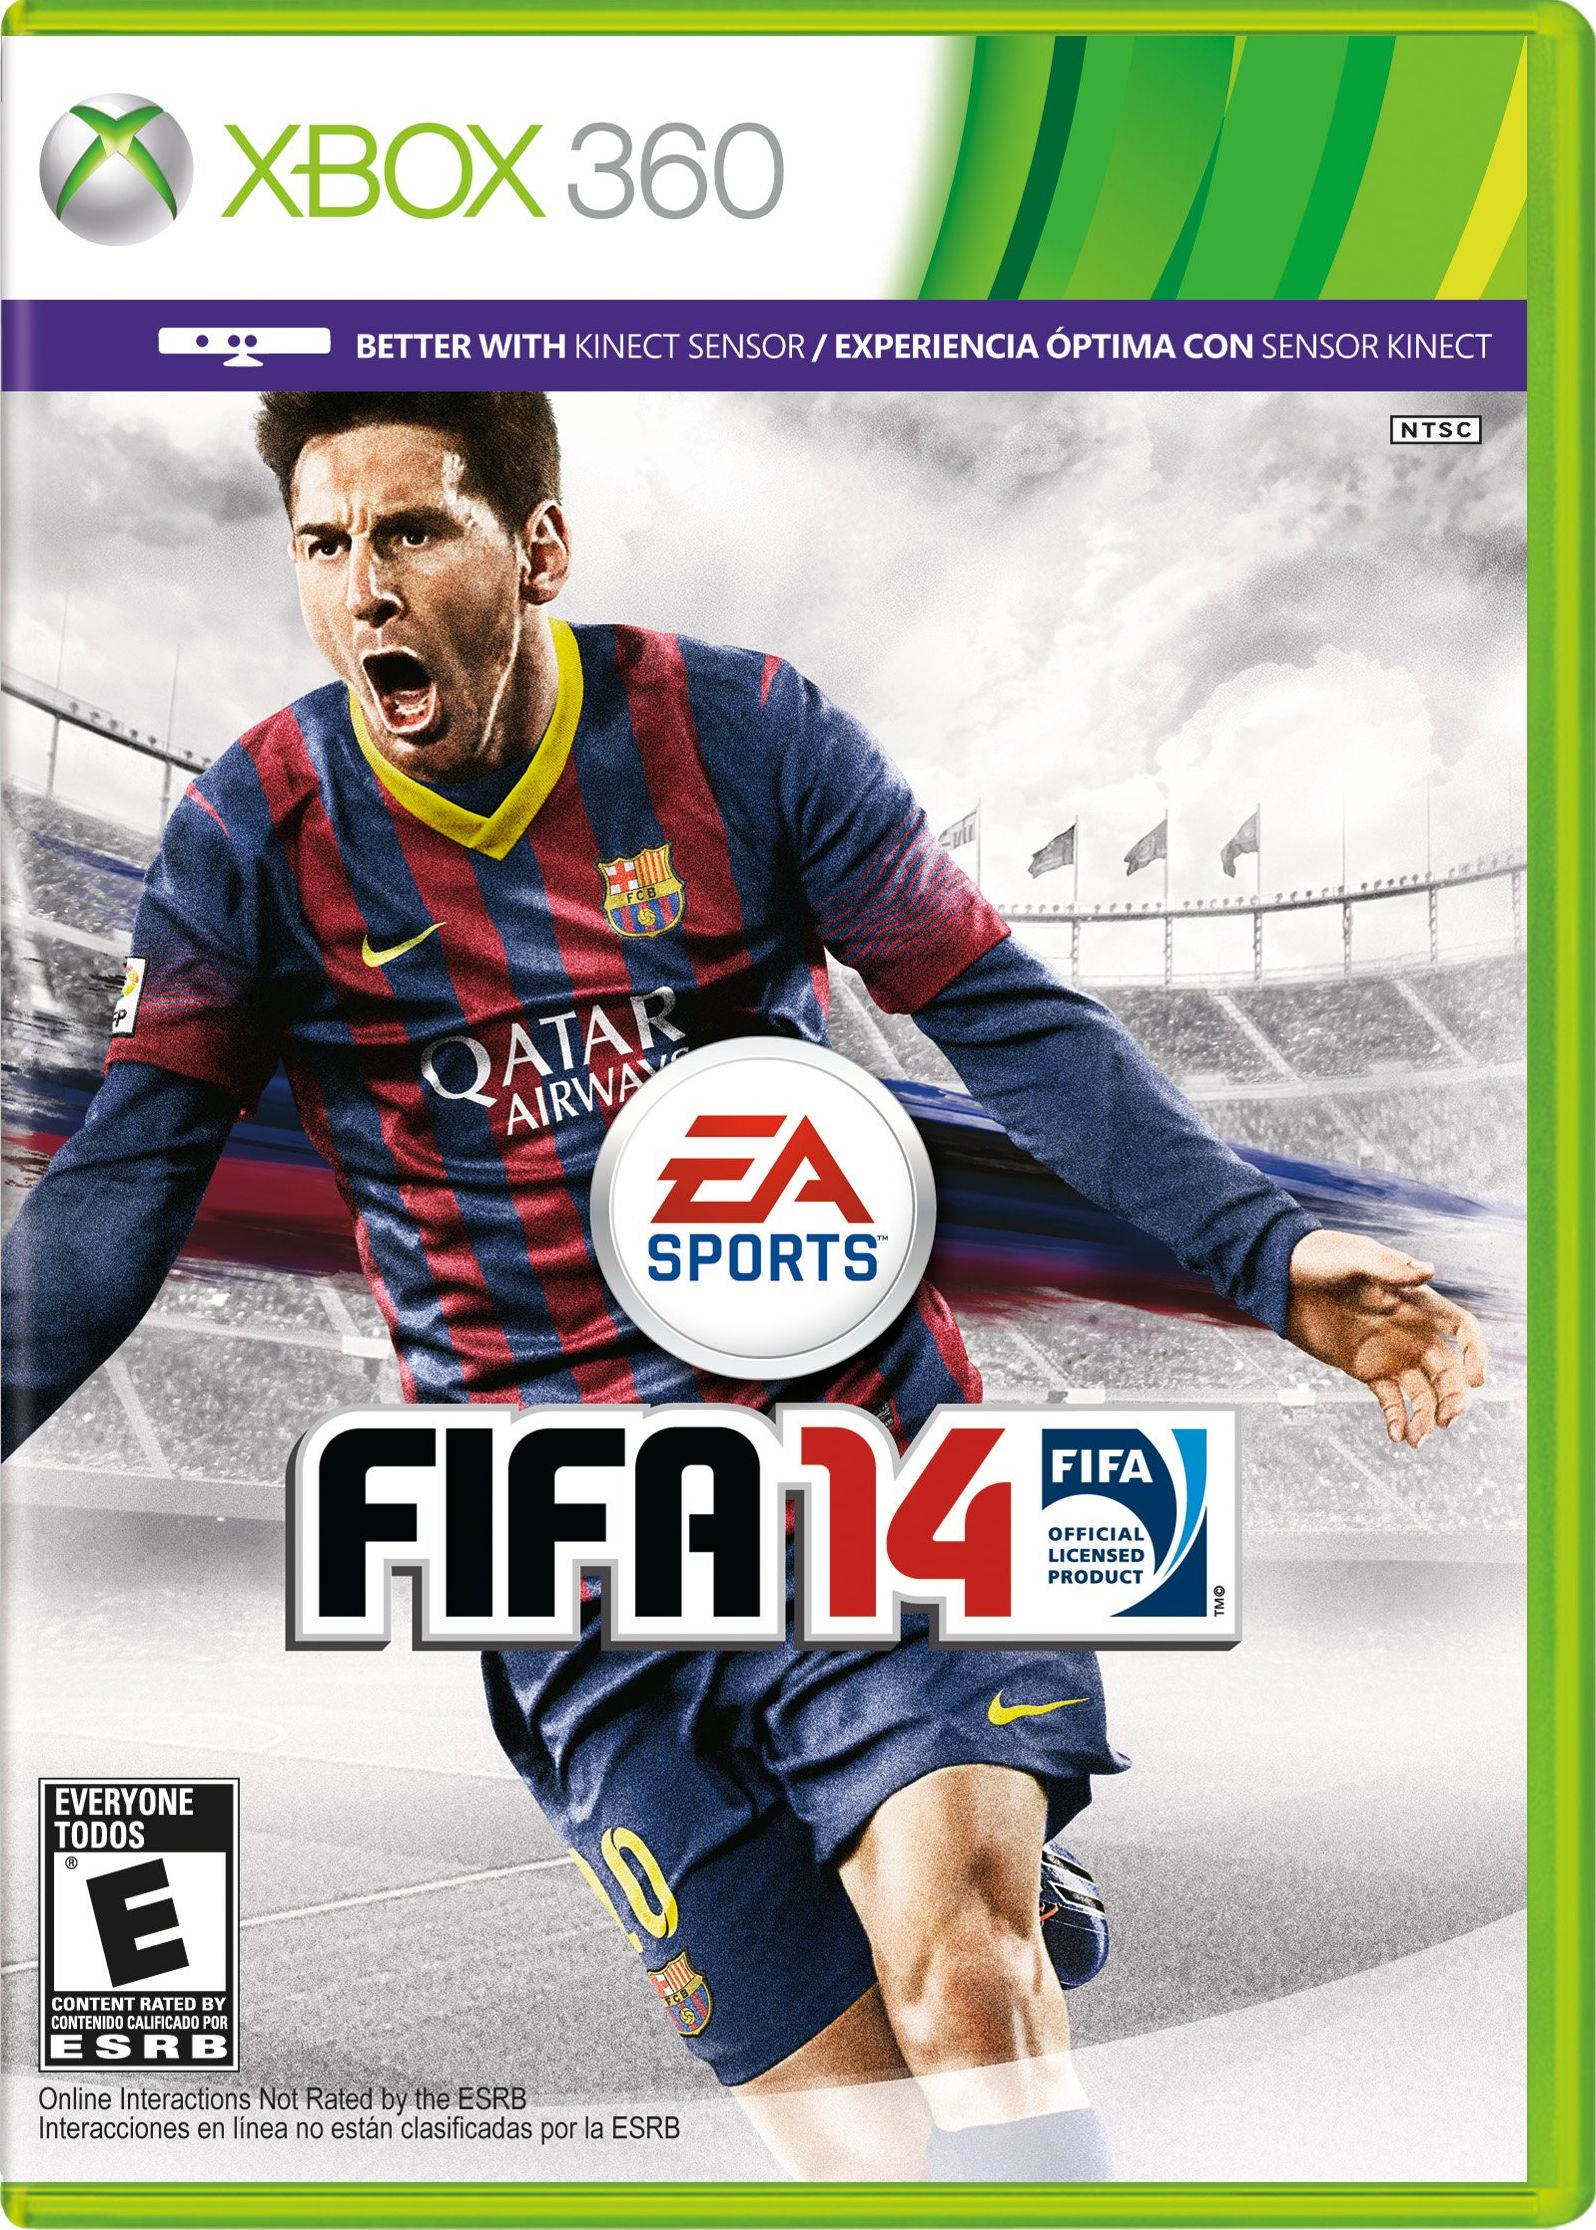 http://www.gamereleasedates.net/images/covers/xbox360/cover-xbox360-fifa-14.jpg